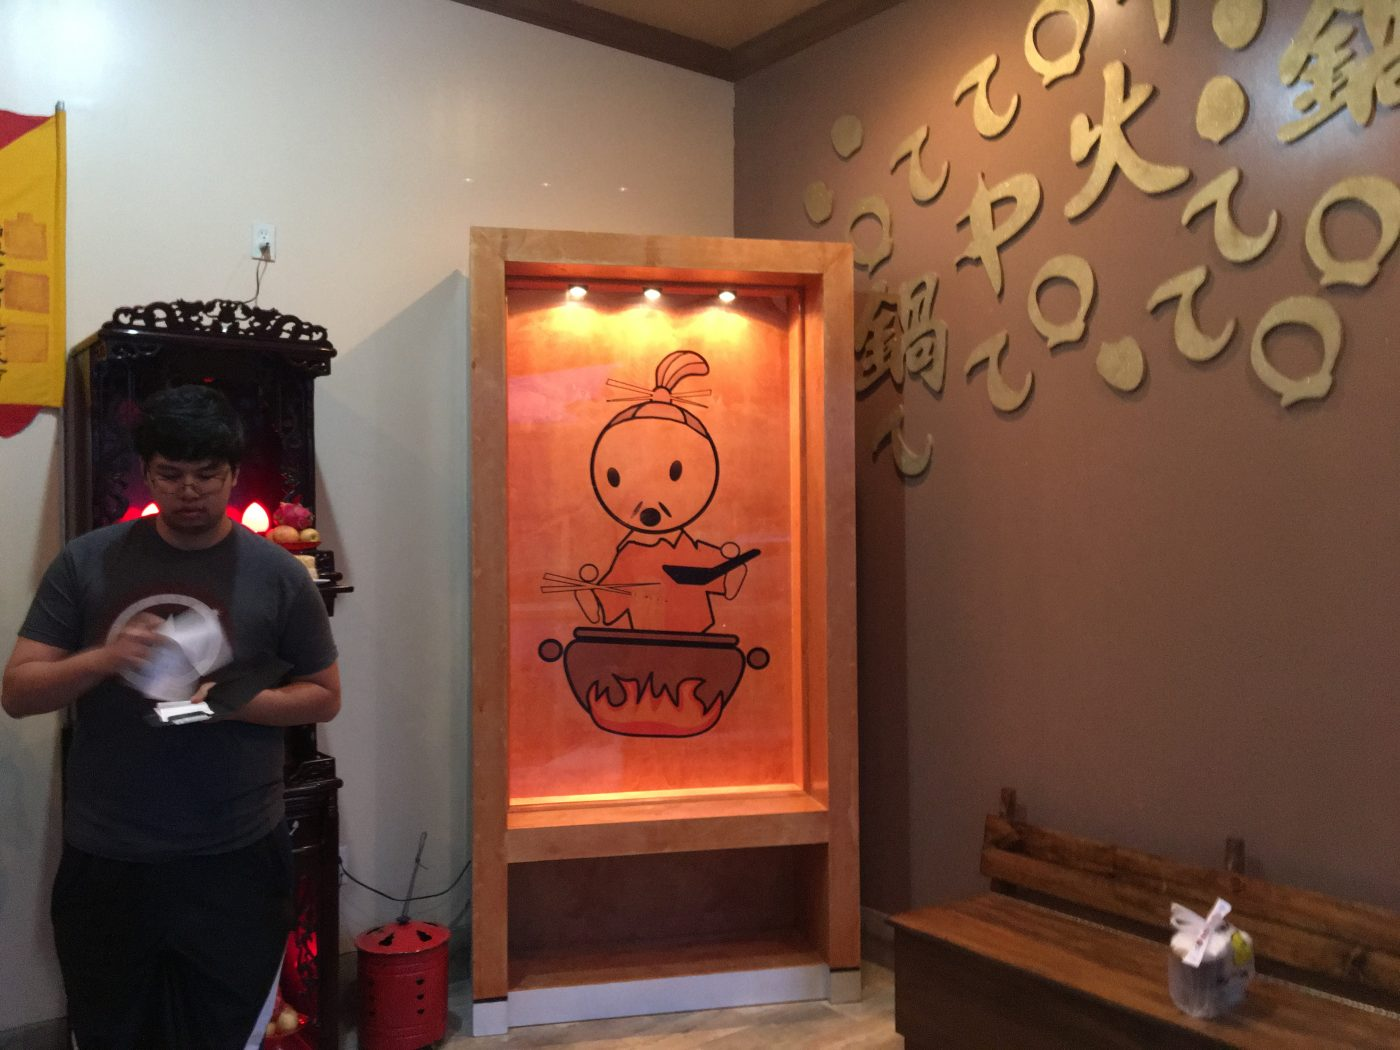 Love that Hotto Potto figure. Hotto Potto at its new location 1700 N. Semoran Blvd, #118, Orlando, FL 32807, 407-930-5366 (credit: Windermere Sun-Susan Sun Nunamaker)